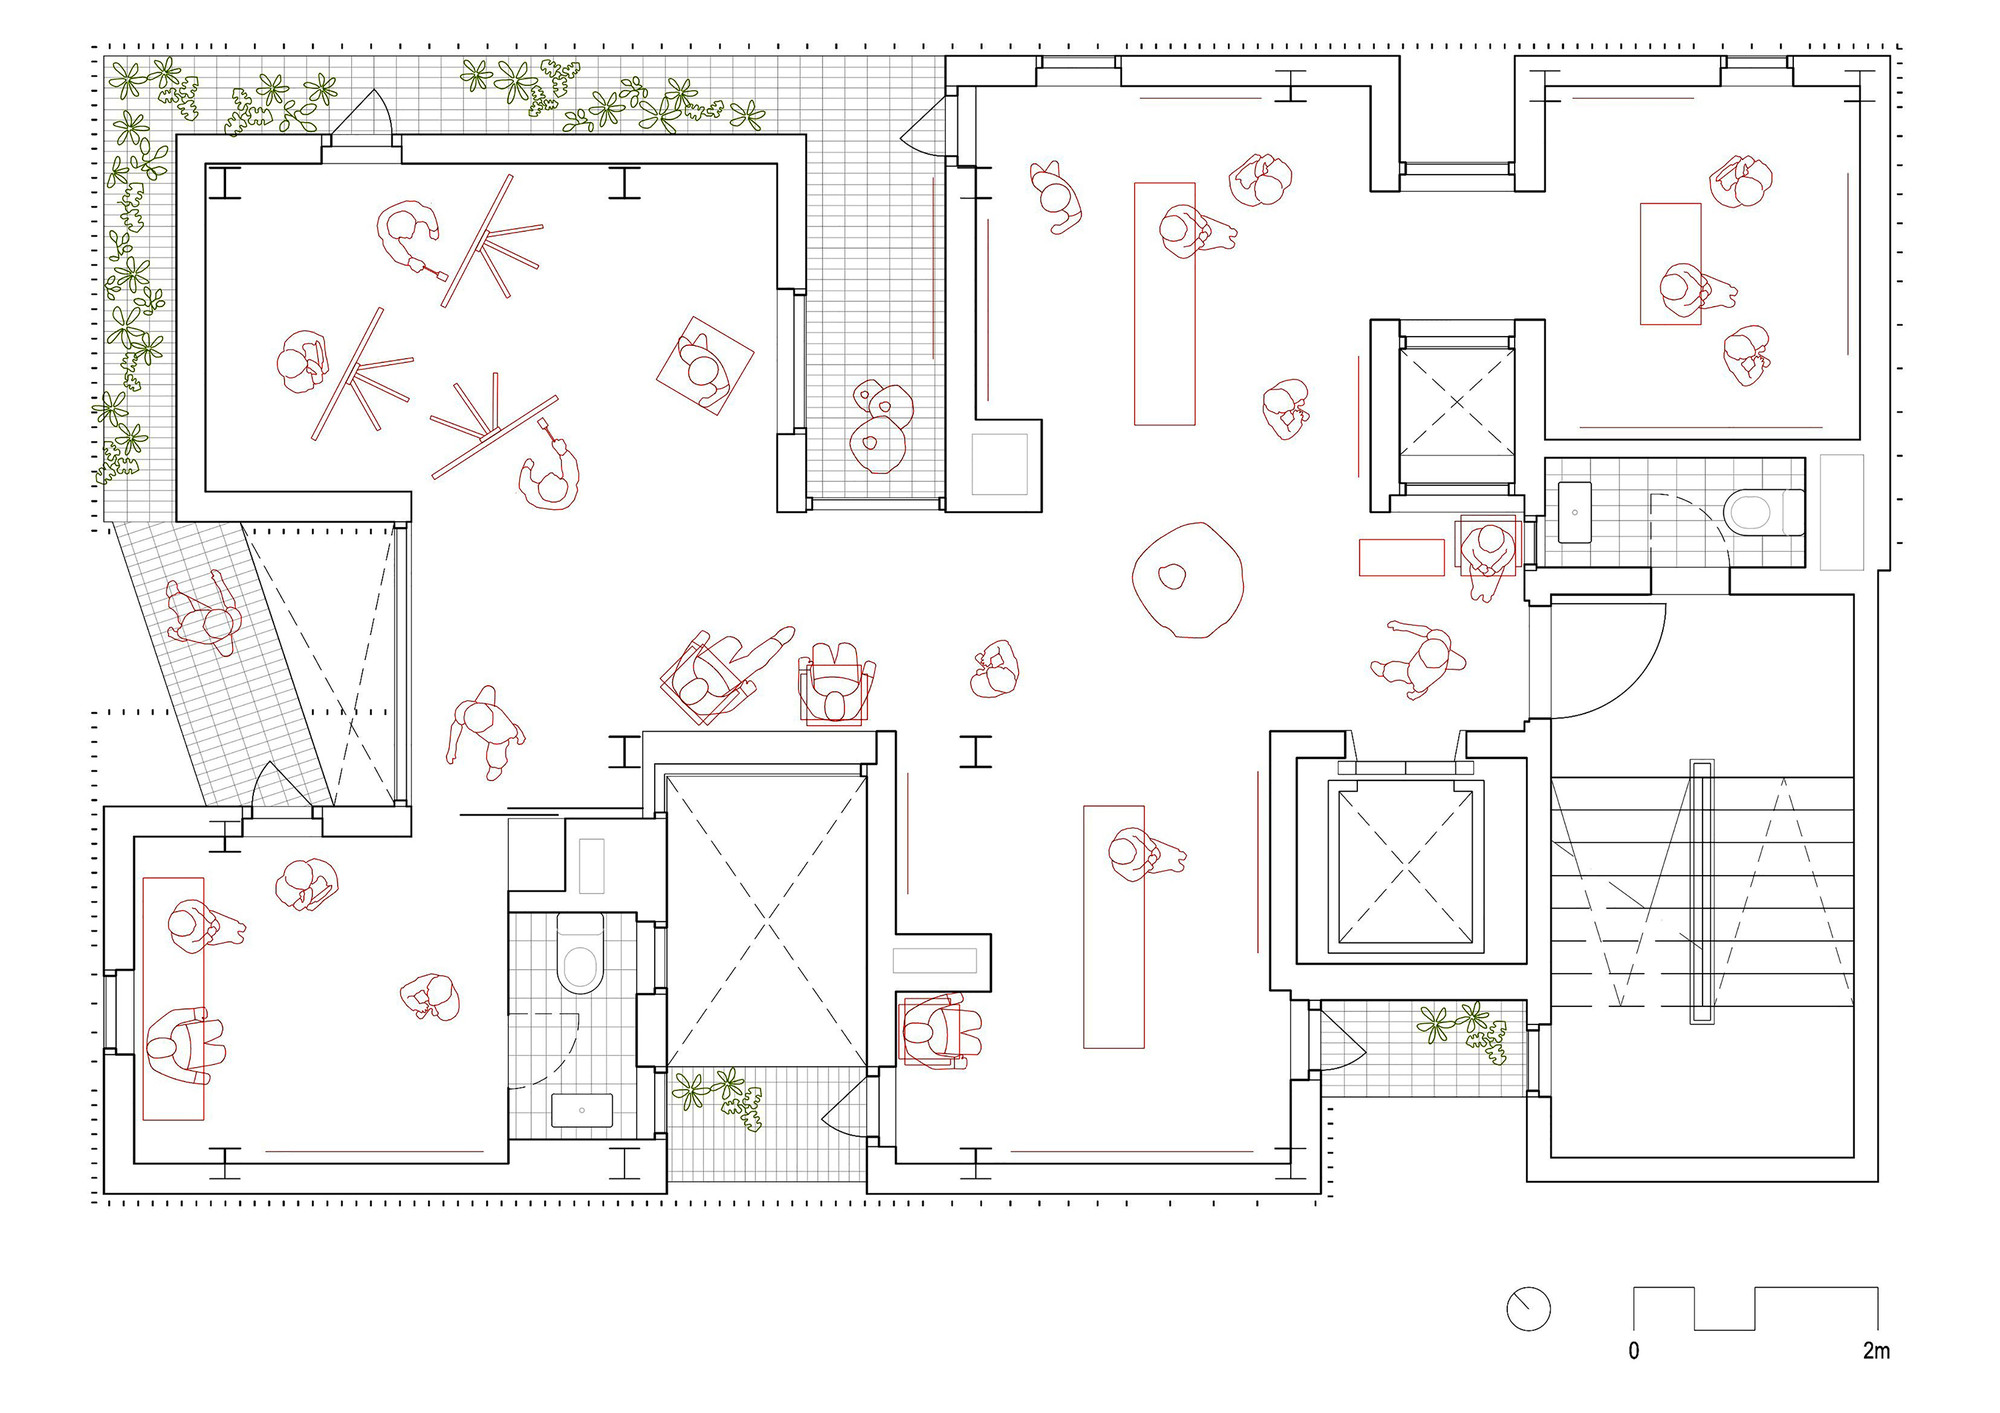 Organic Architecture Floor Plans Gallery Of Songpa Micro Housing Ssd 23